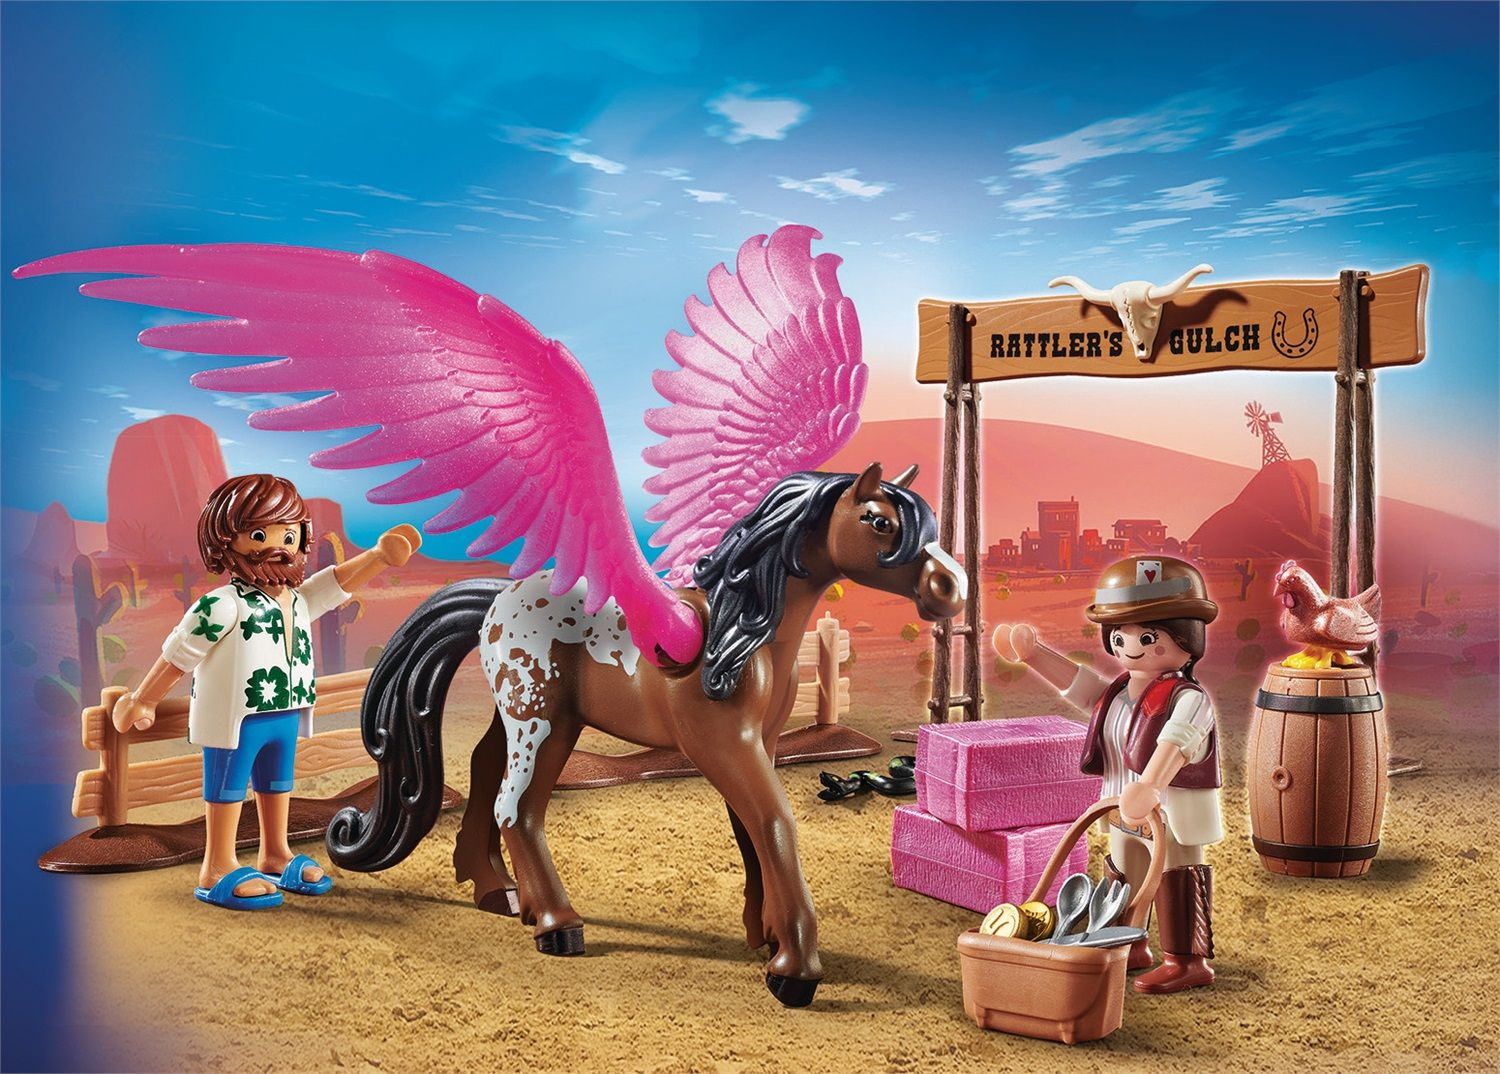 Playmobil The Movie Marla e Del con cavallo alato